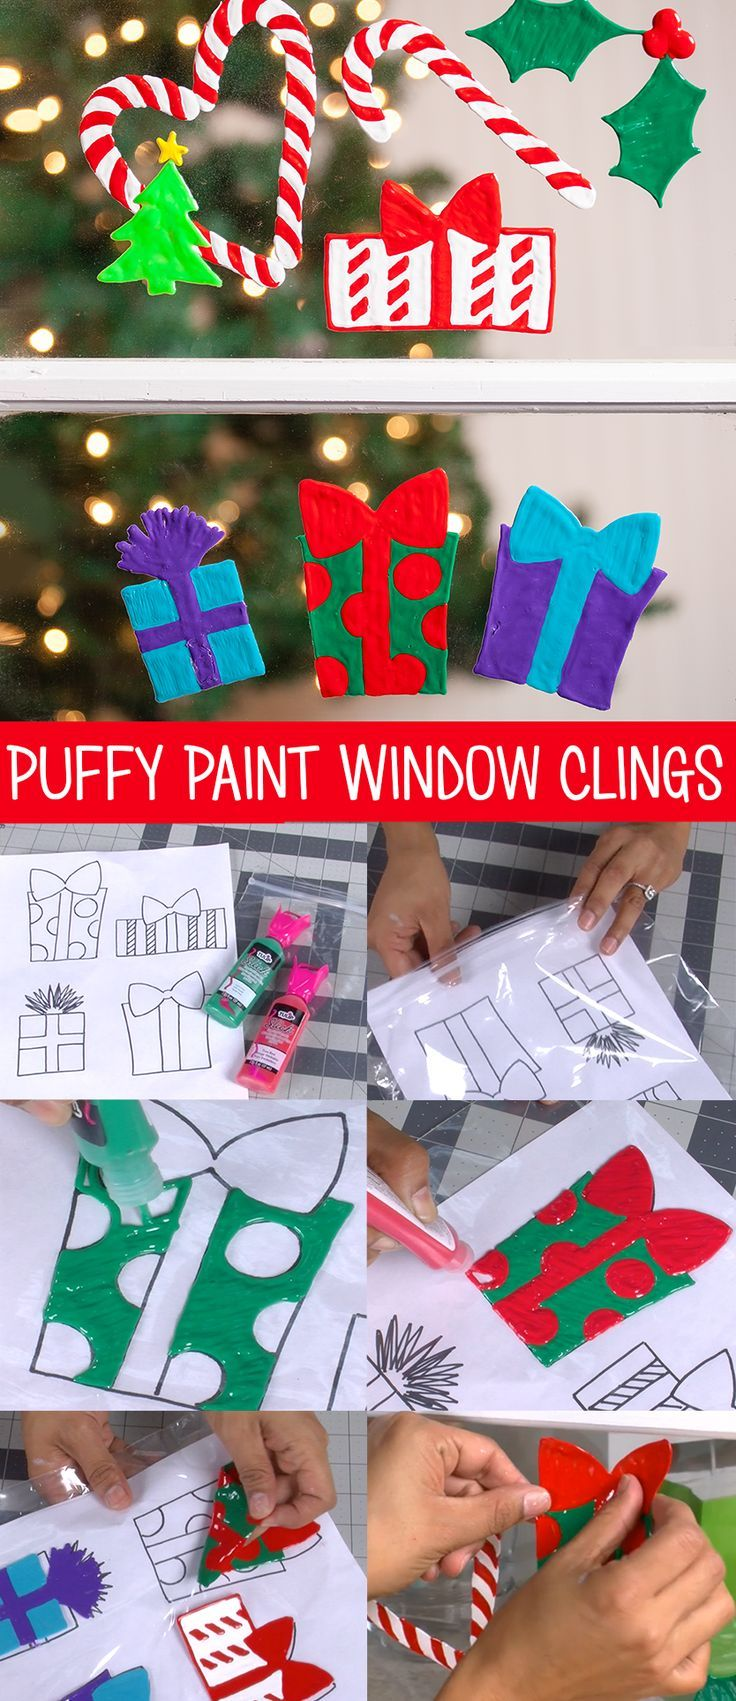 309 best Puffy Paint DIY images on Pinterest